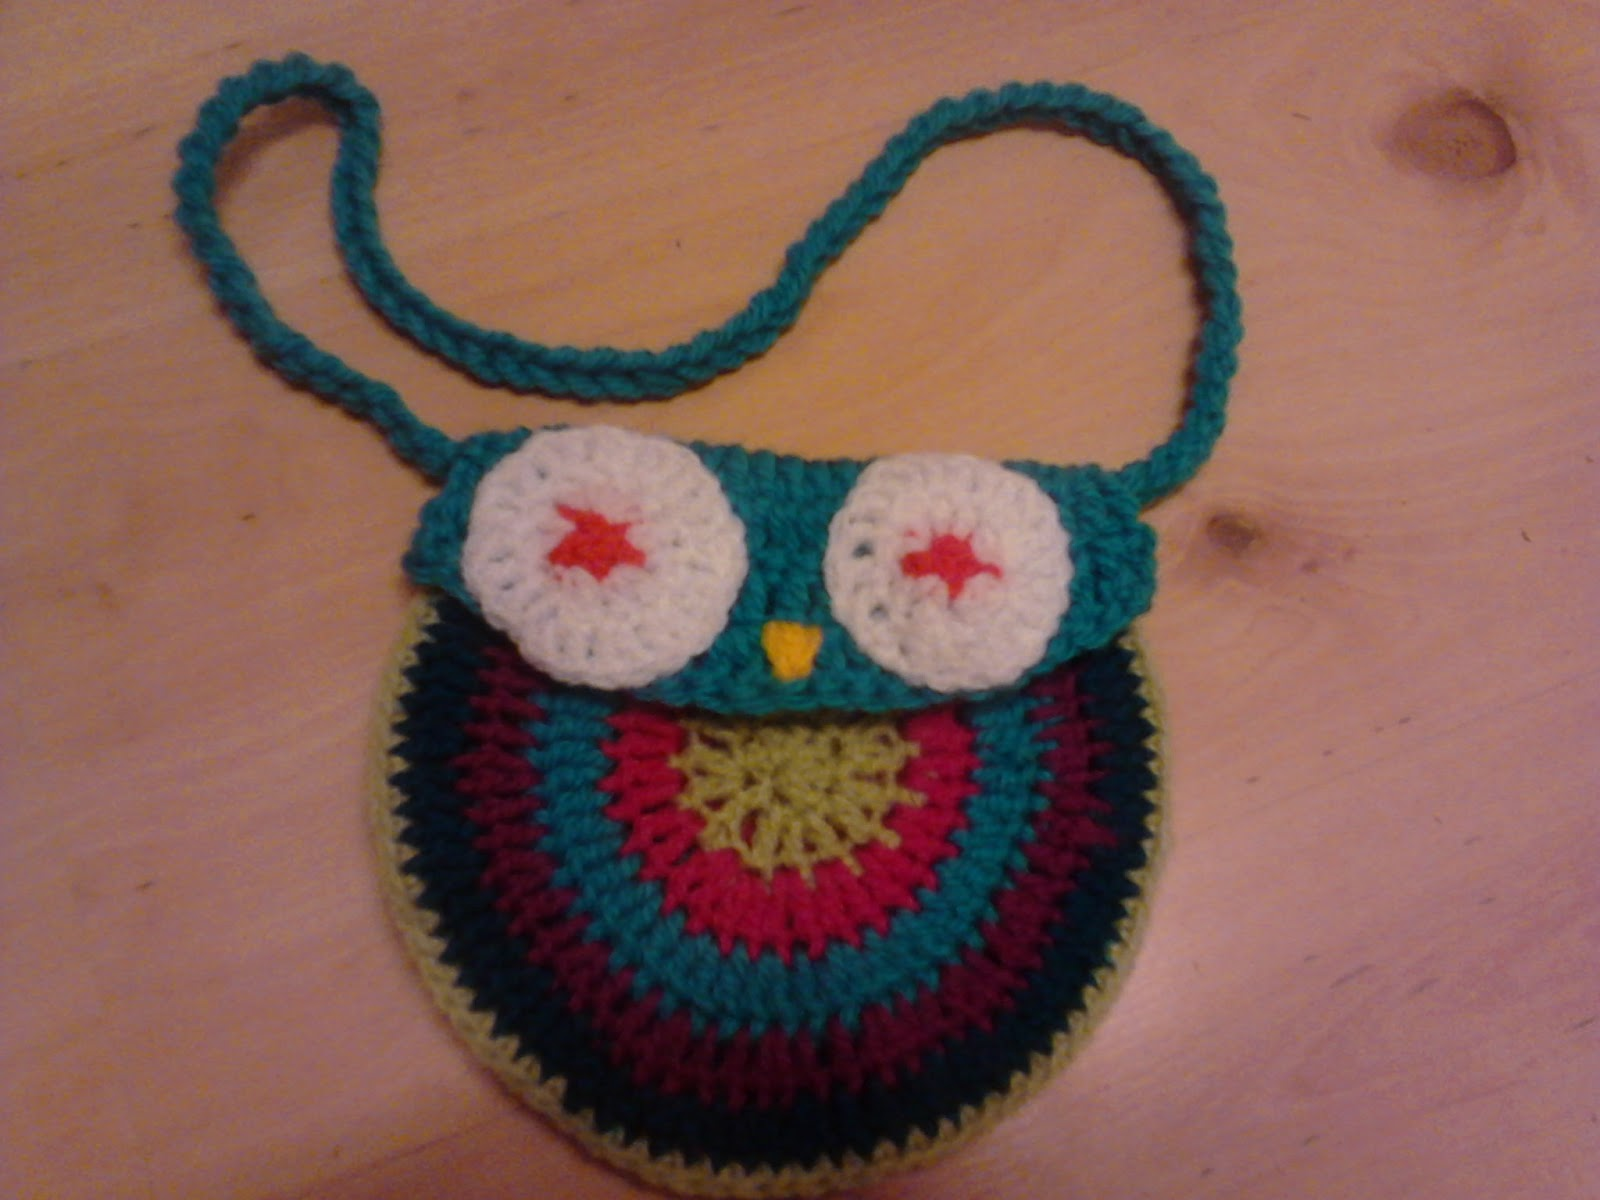 Crochet Owl Bag Pattern Free : Bits and Bobs Zone: Crochet Owl Bag.